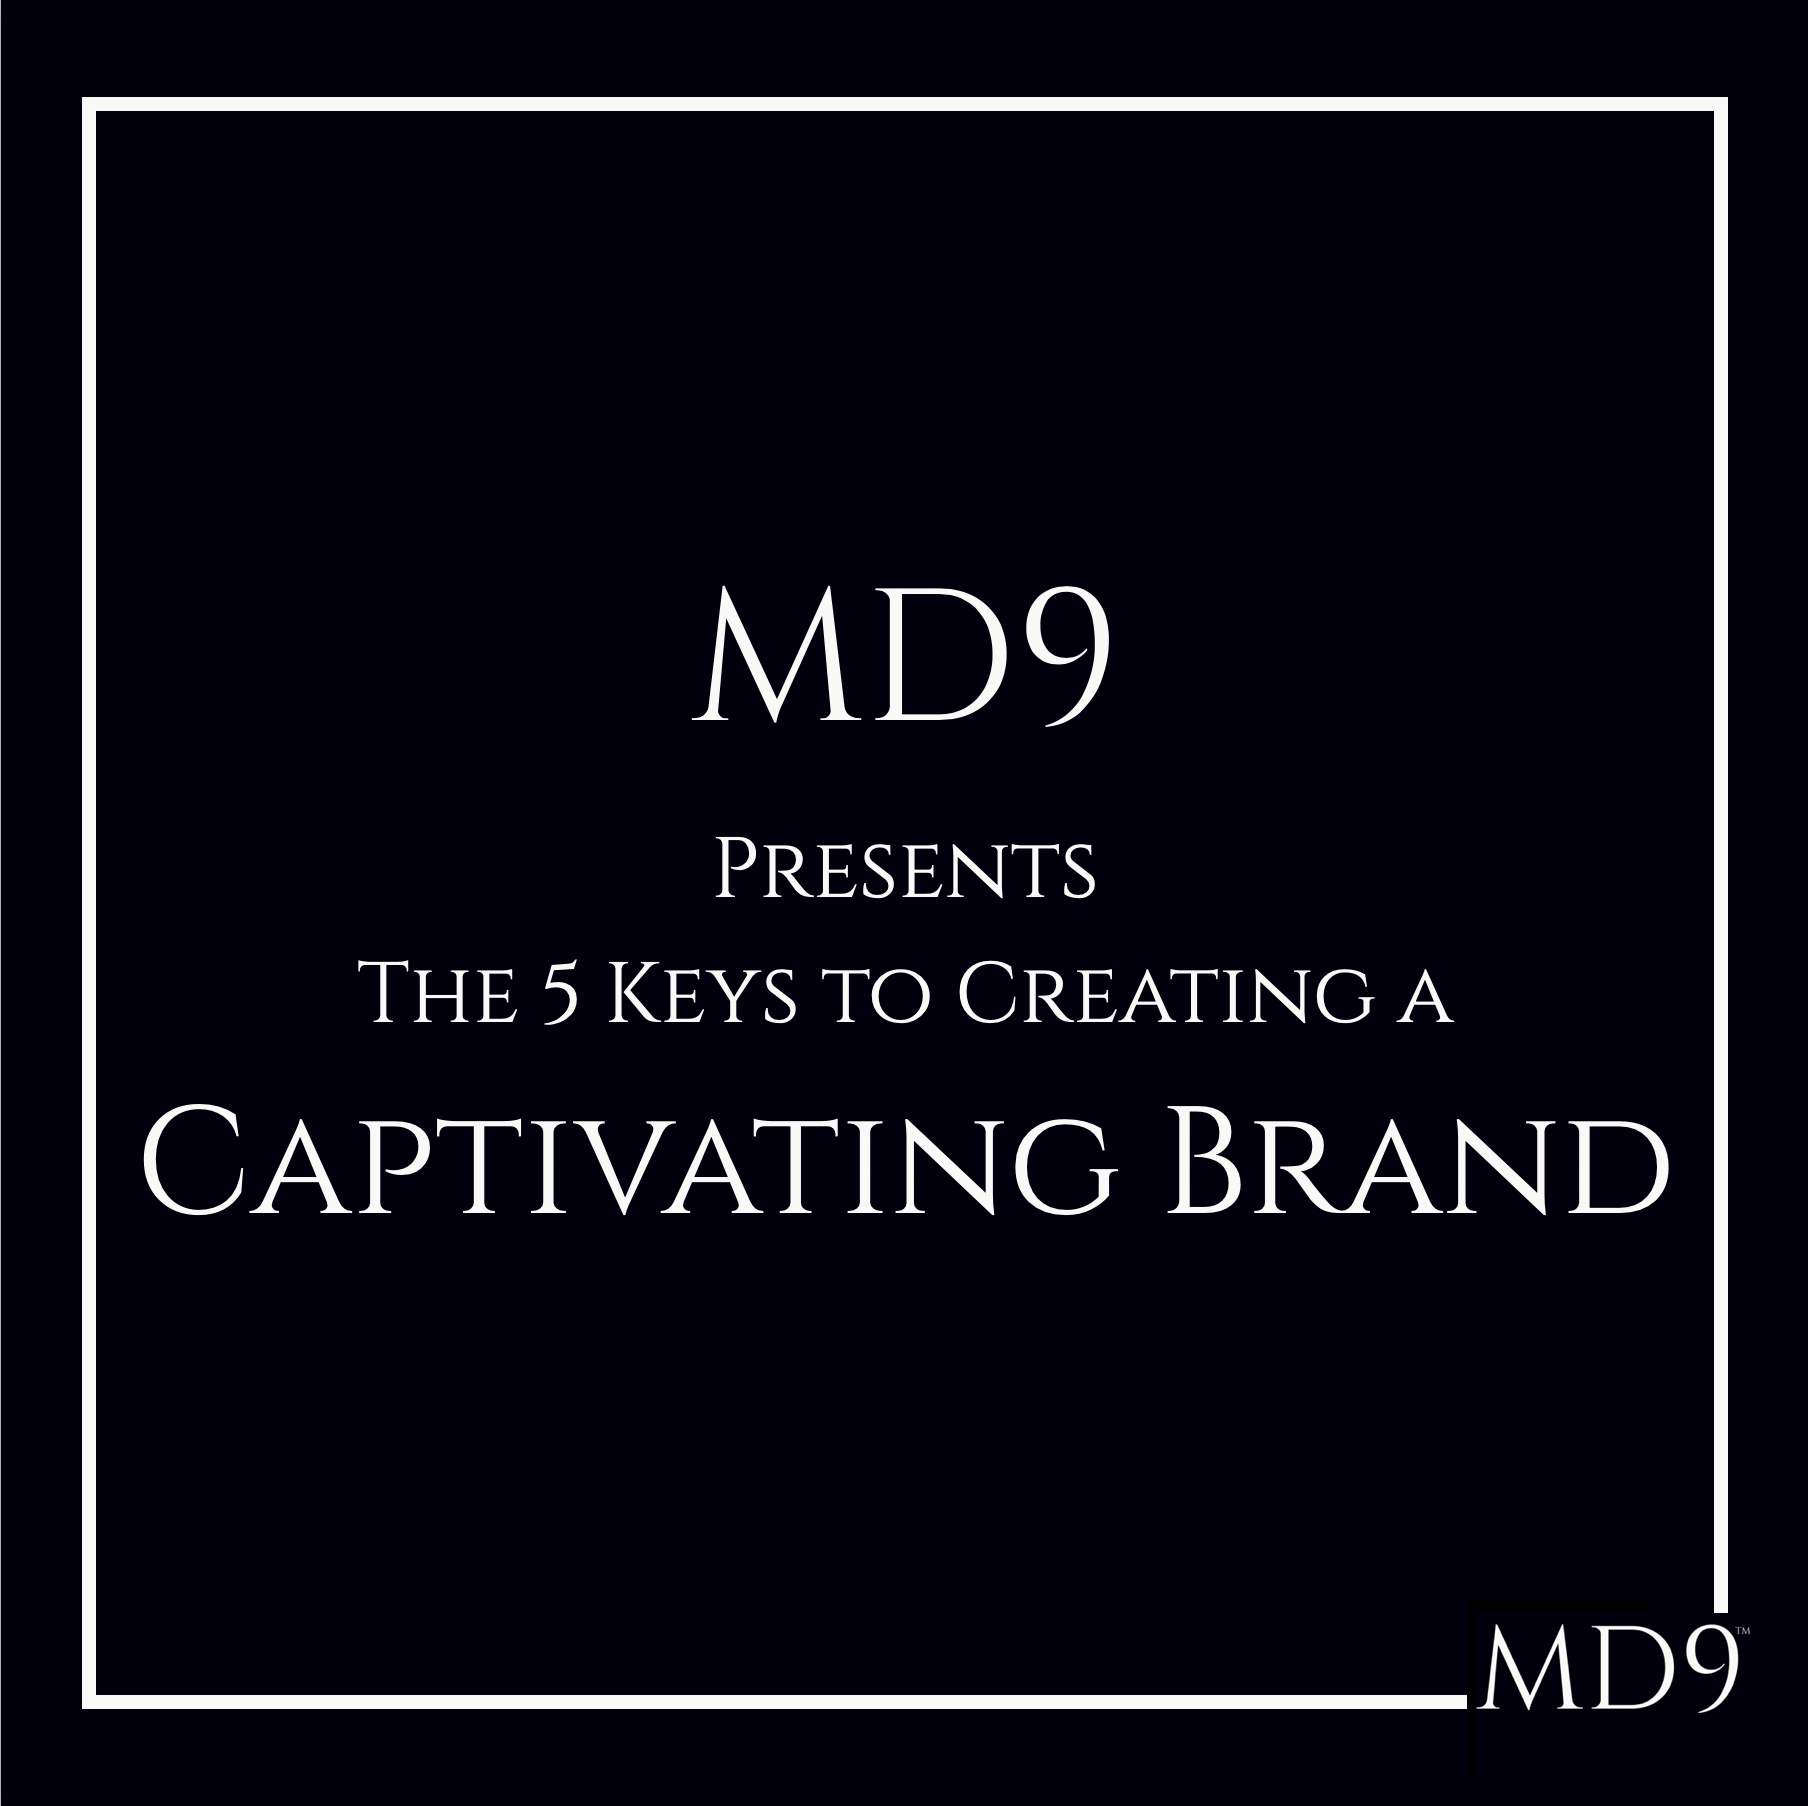 The 5 Keys To Creating A Captivating Brand